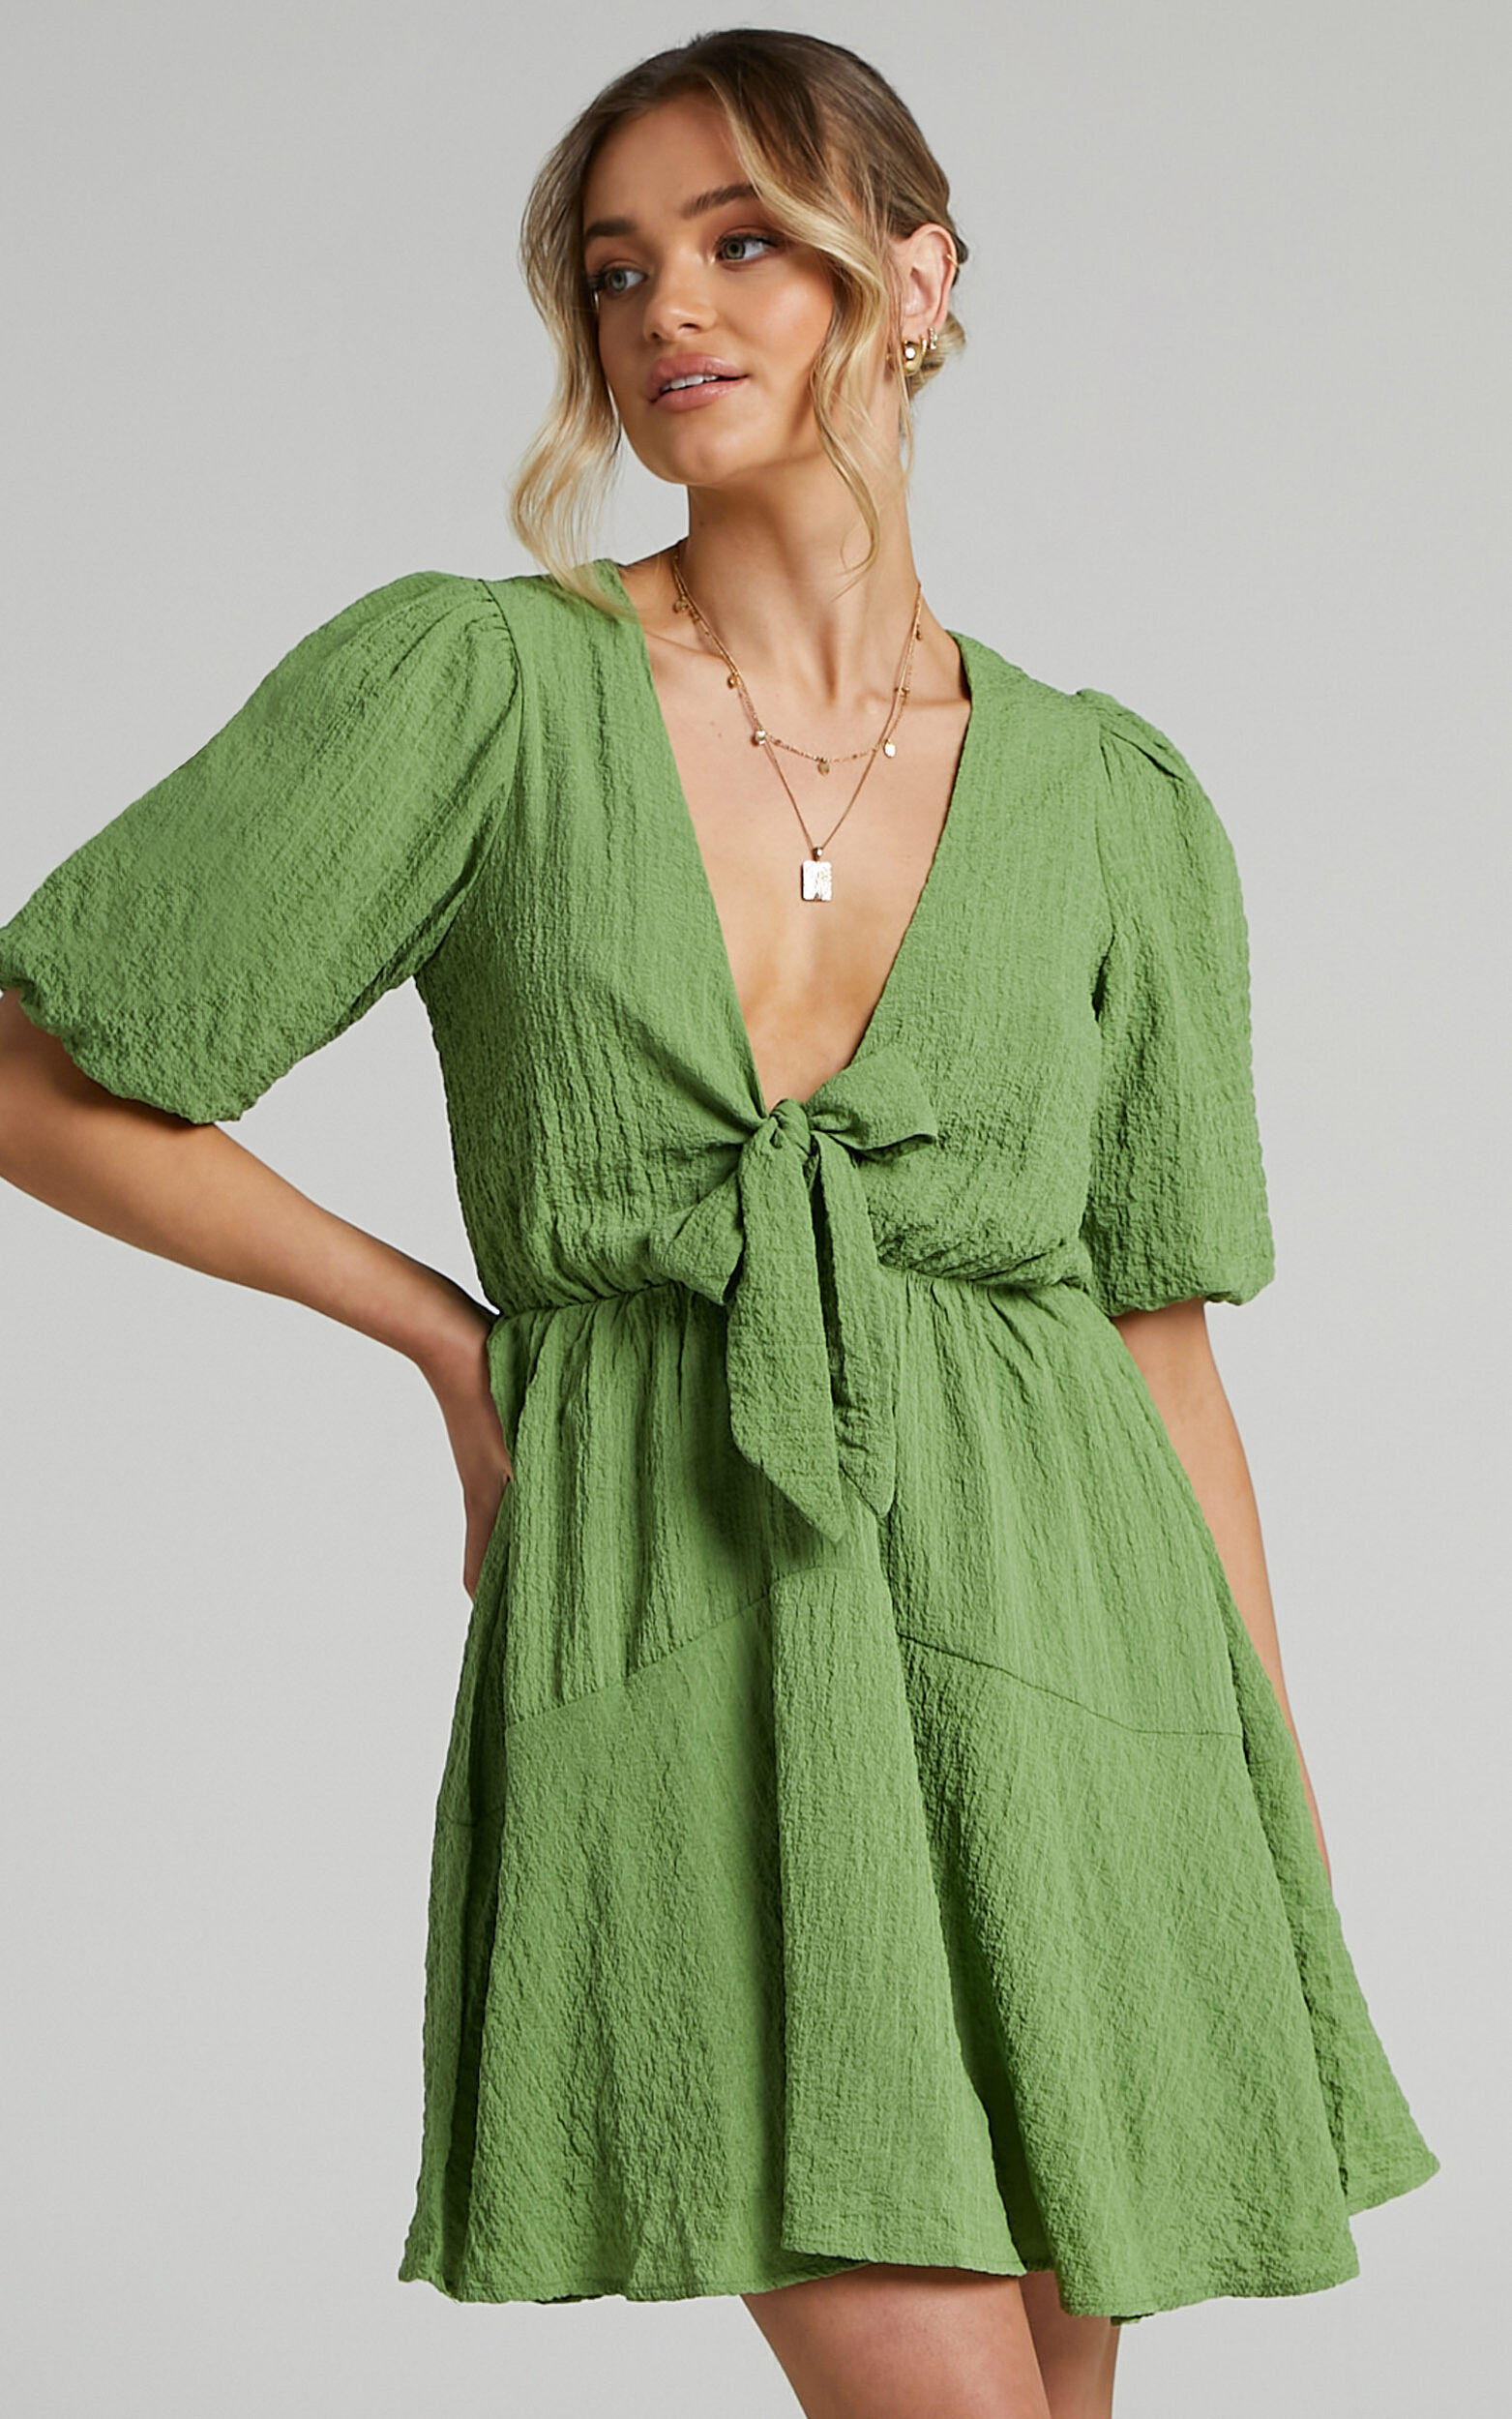 Rosalei Puff Sleeve Tie Front Mini Dress in Green - 04, GRN1, super-hi-res image number null